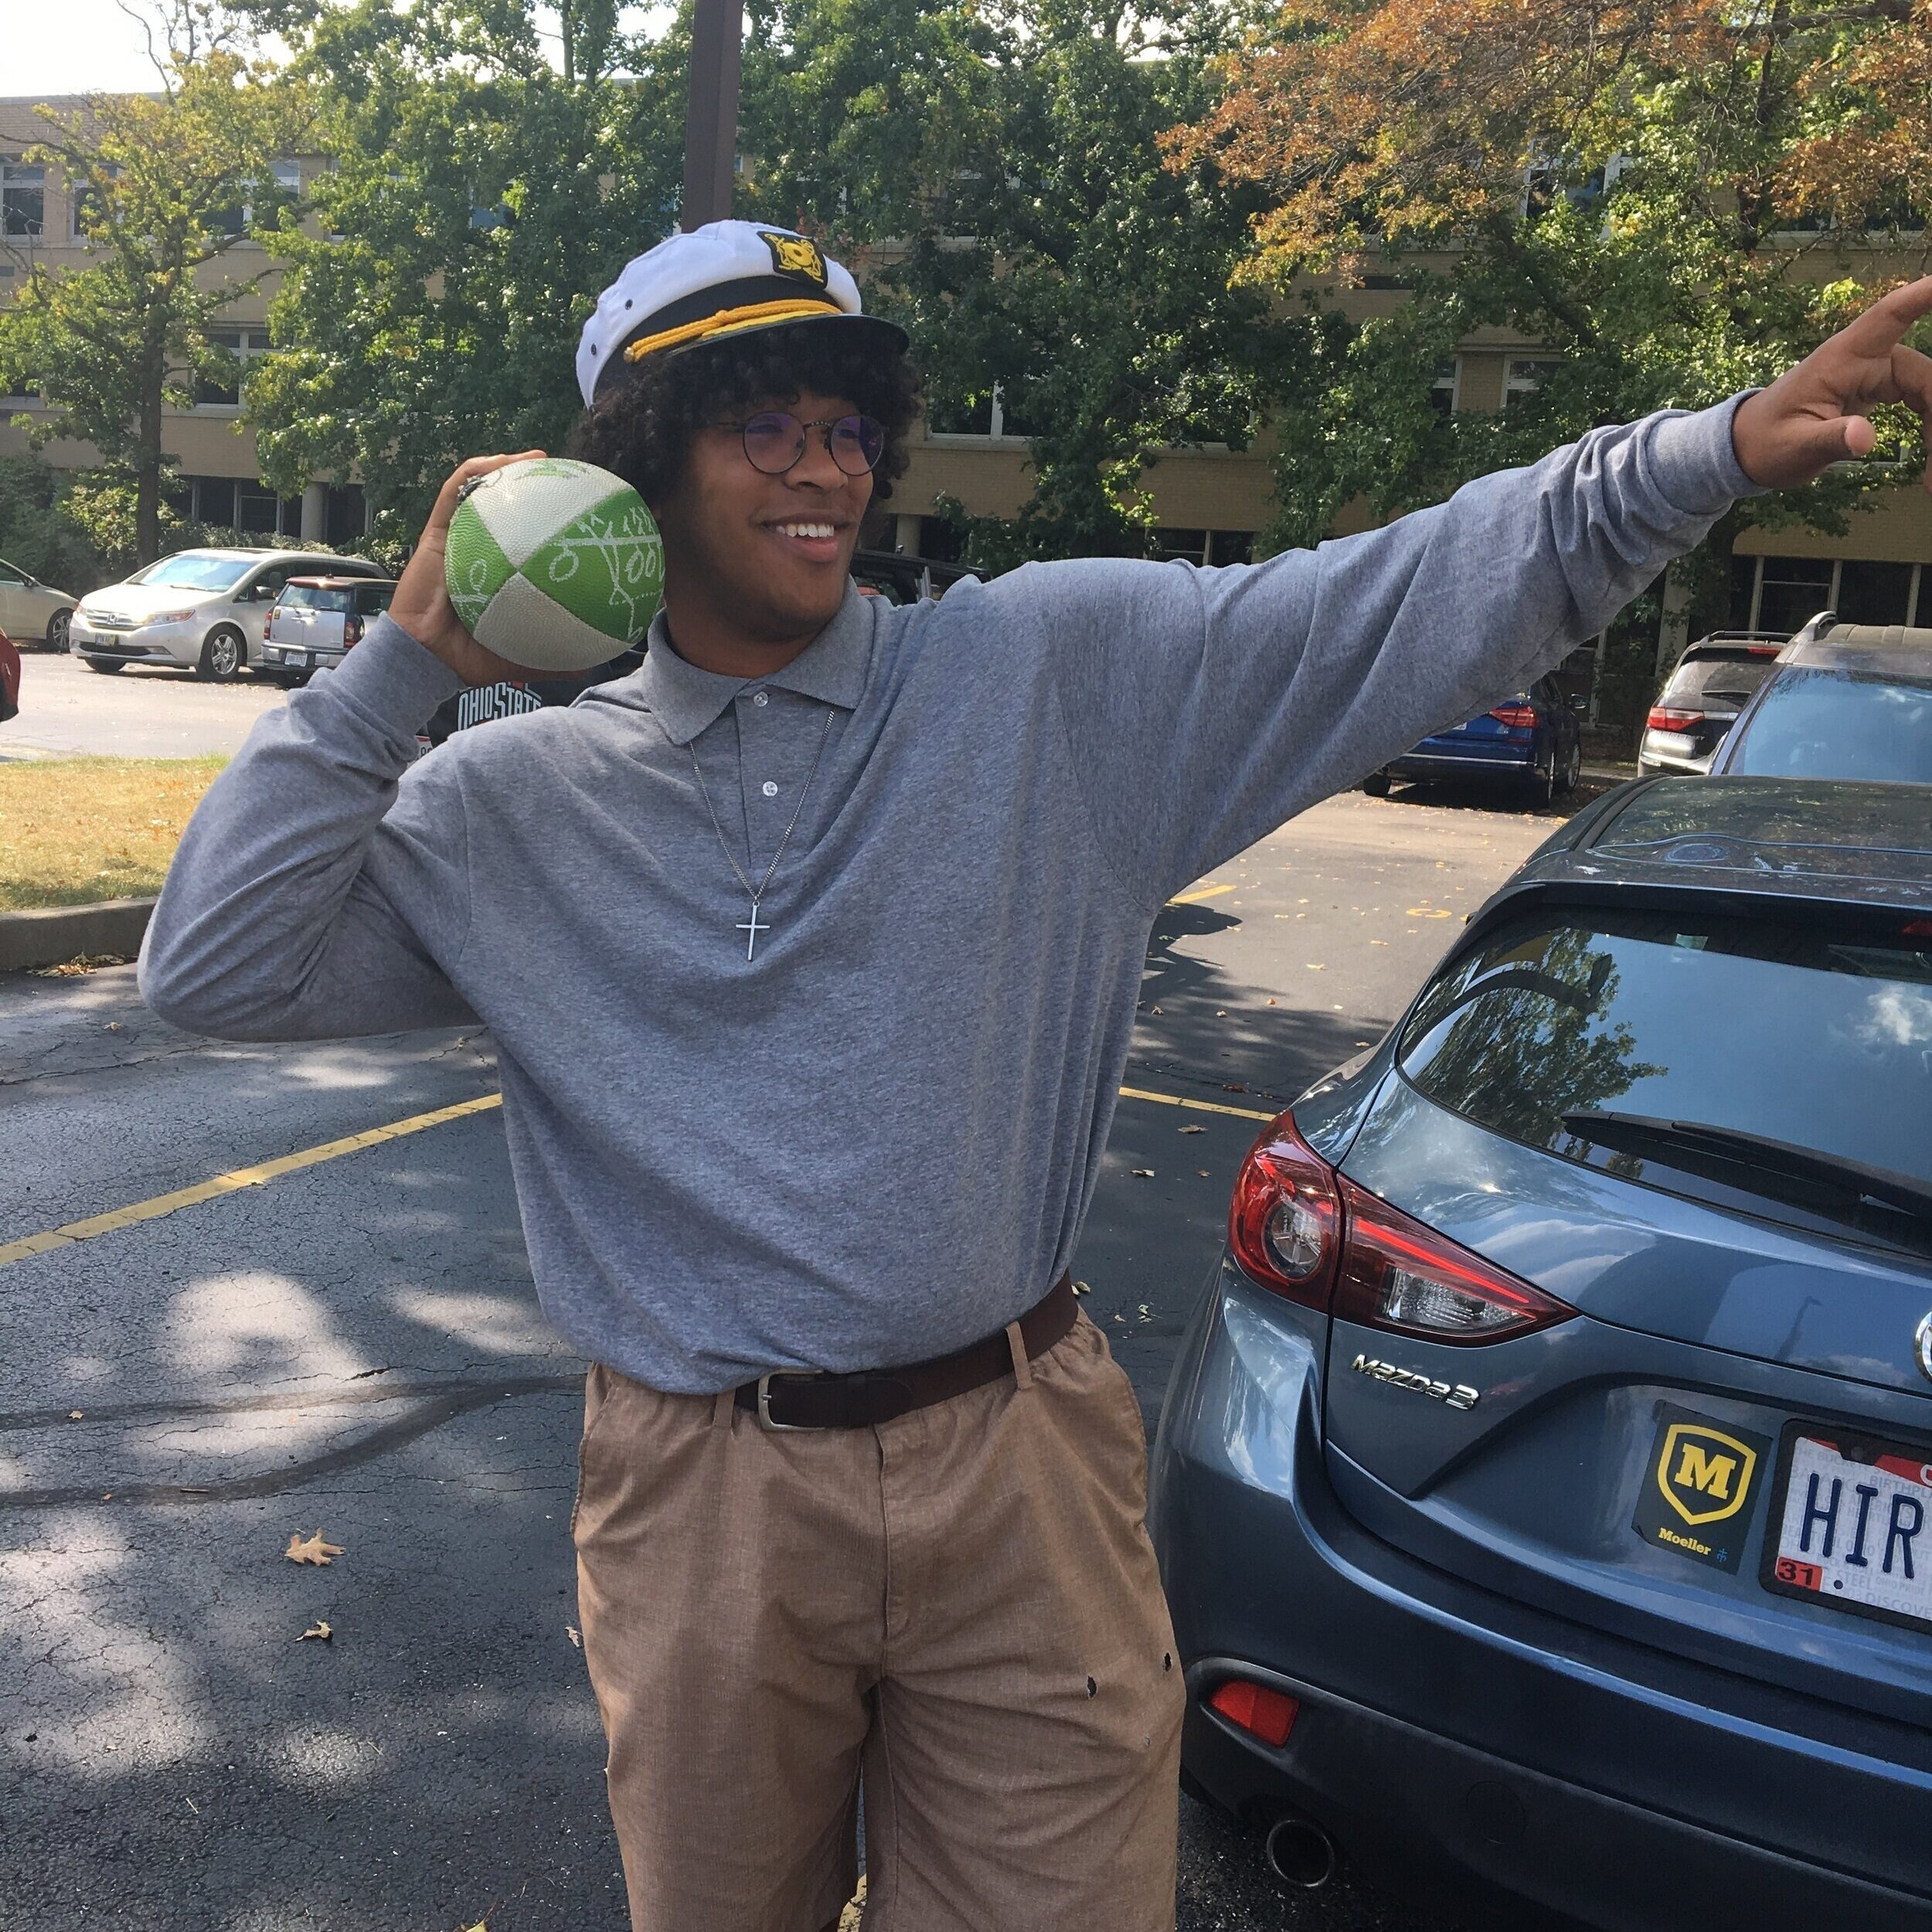 Senior captain Dobry Shaw showing of his rocket arm in the Moeller parking lot  by Jack Land